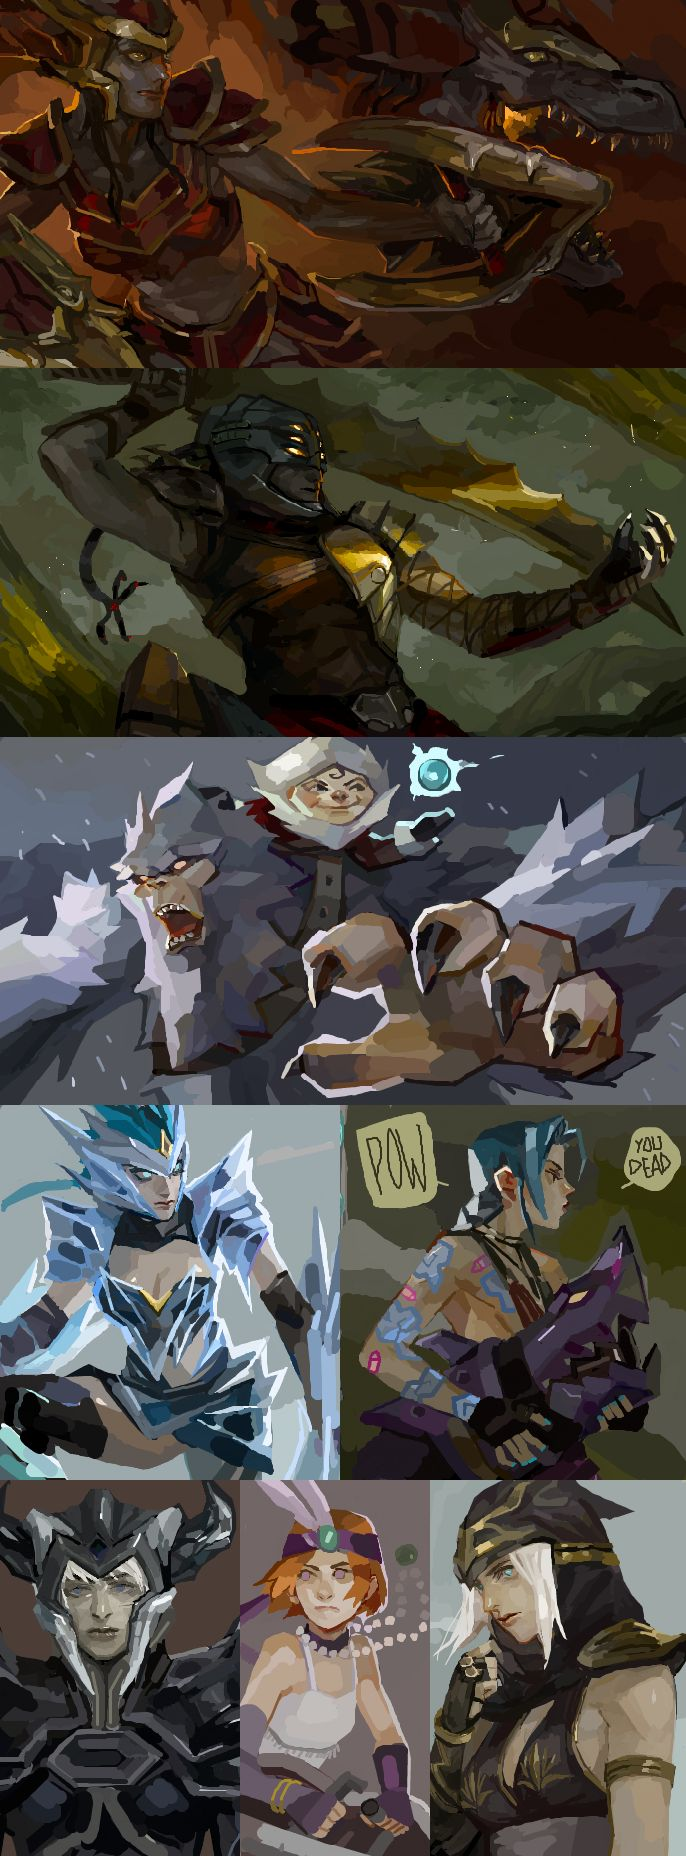 [LoL] champs compilation 2 by zuqling.deviantart.com on @DeviantArt